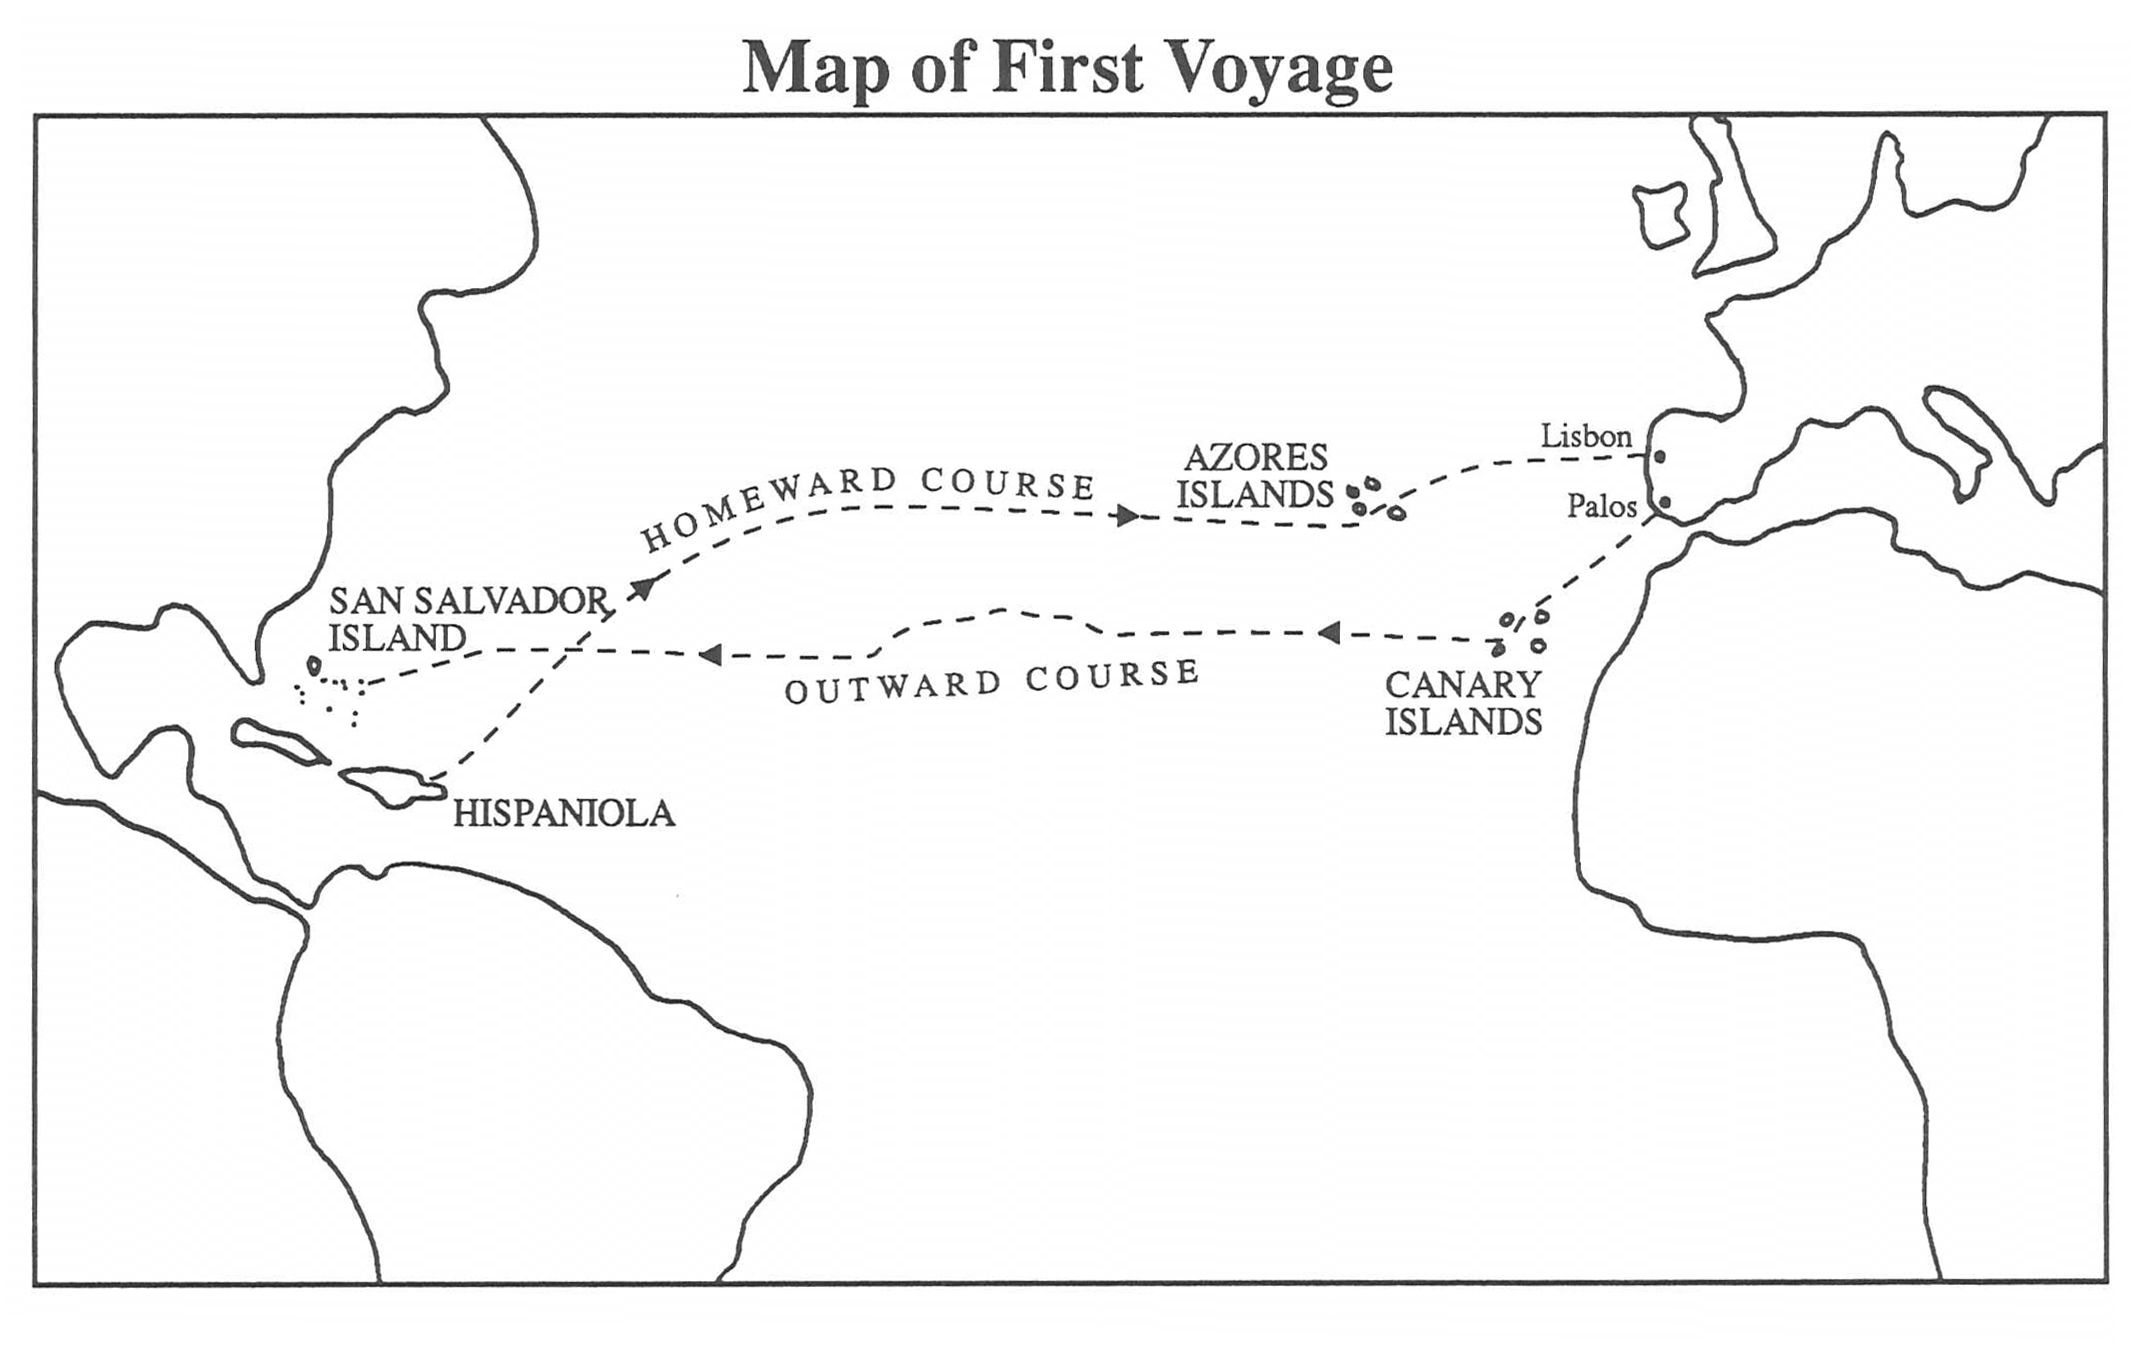 christopher columbus first voyage | Chapter 5: First Voyage to the ...